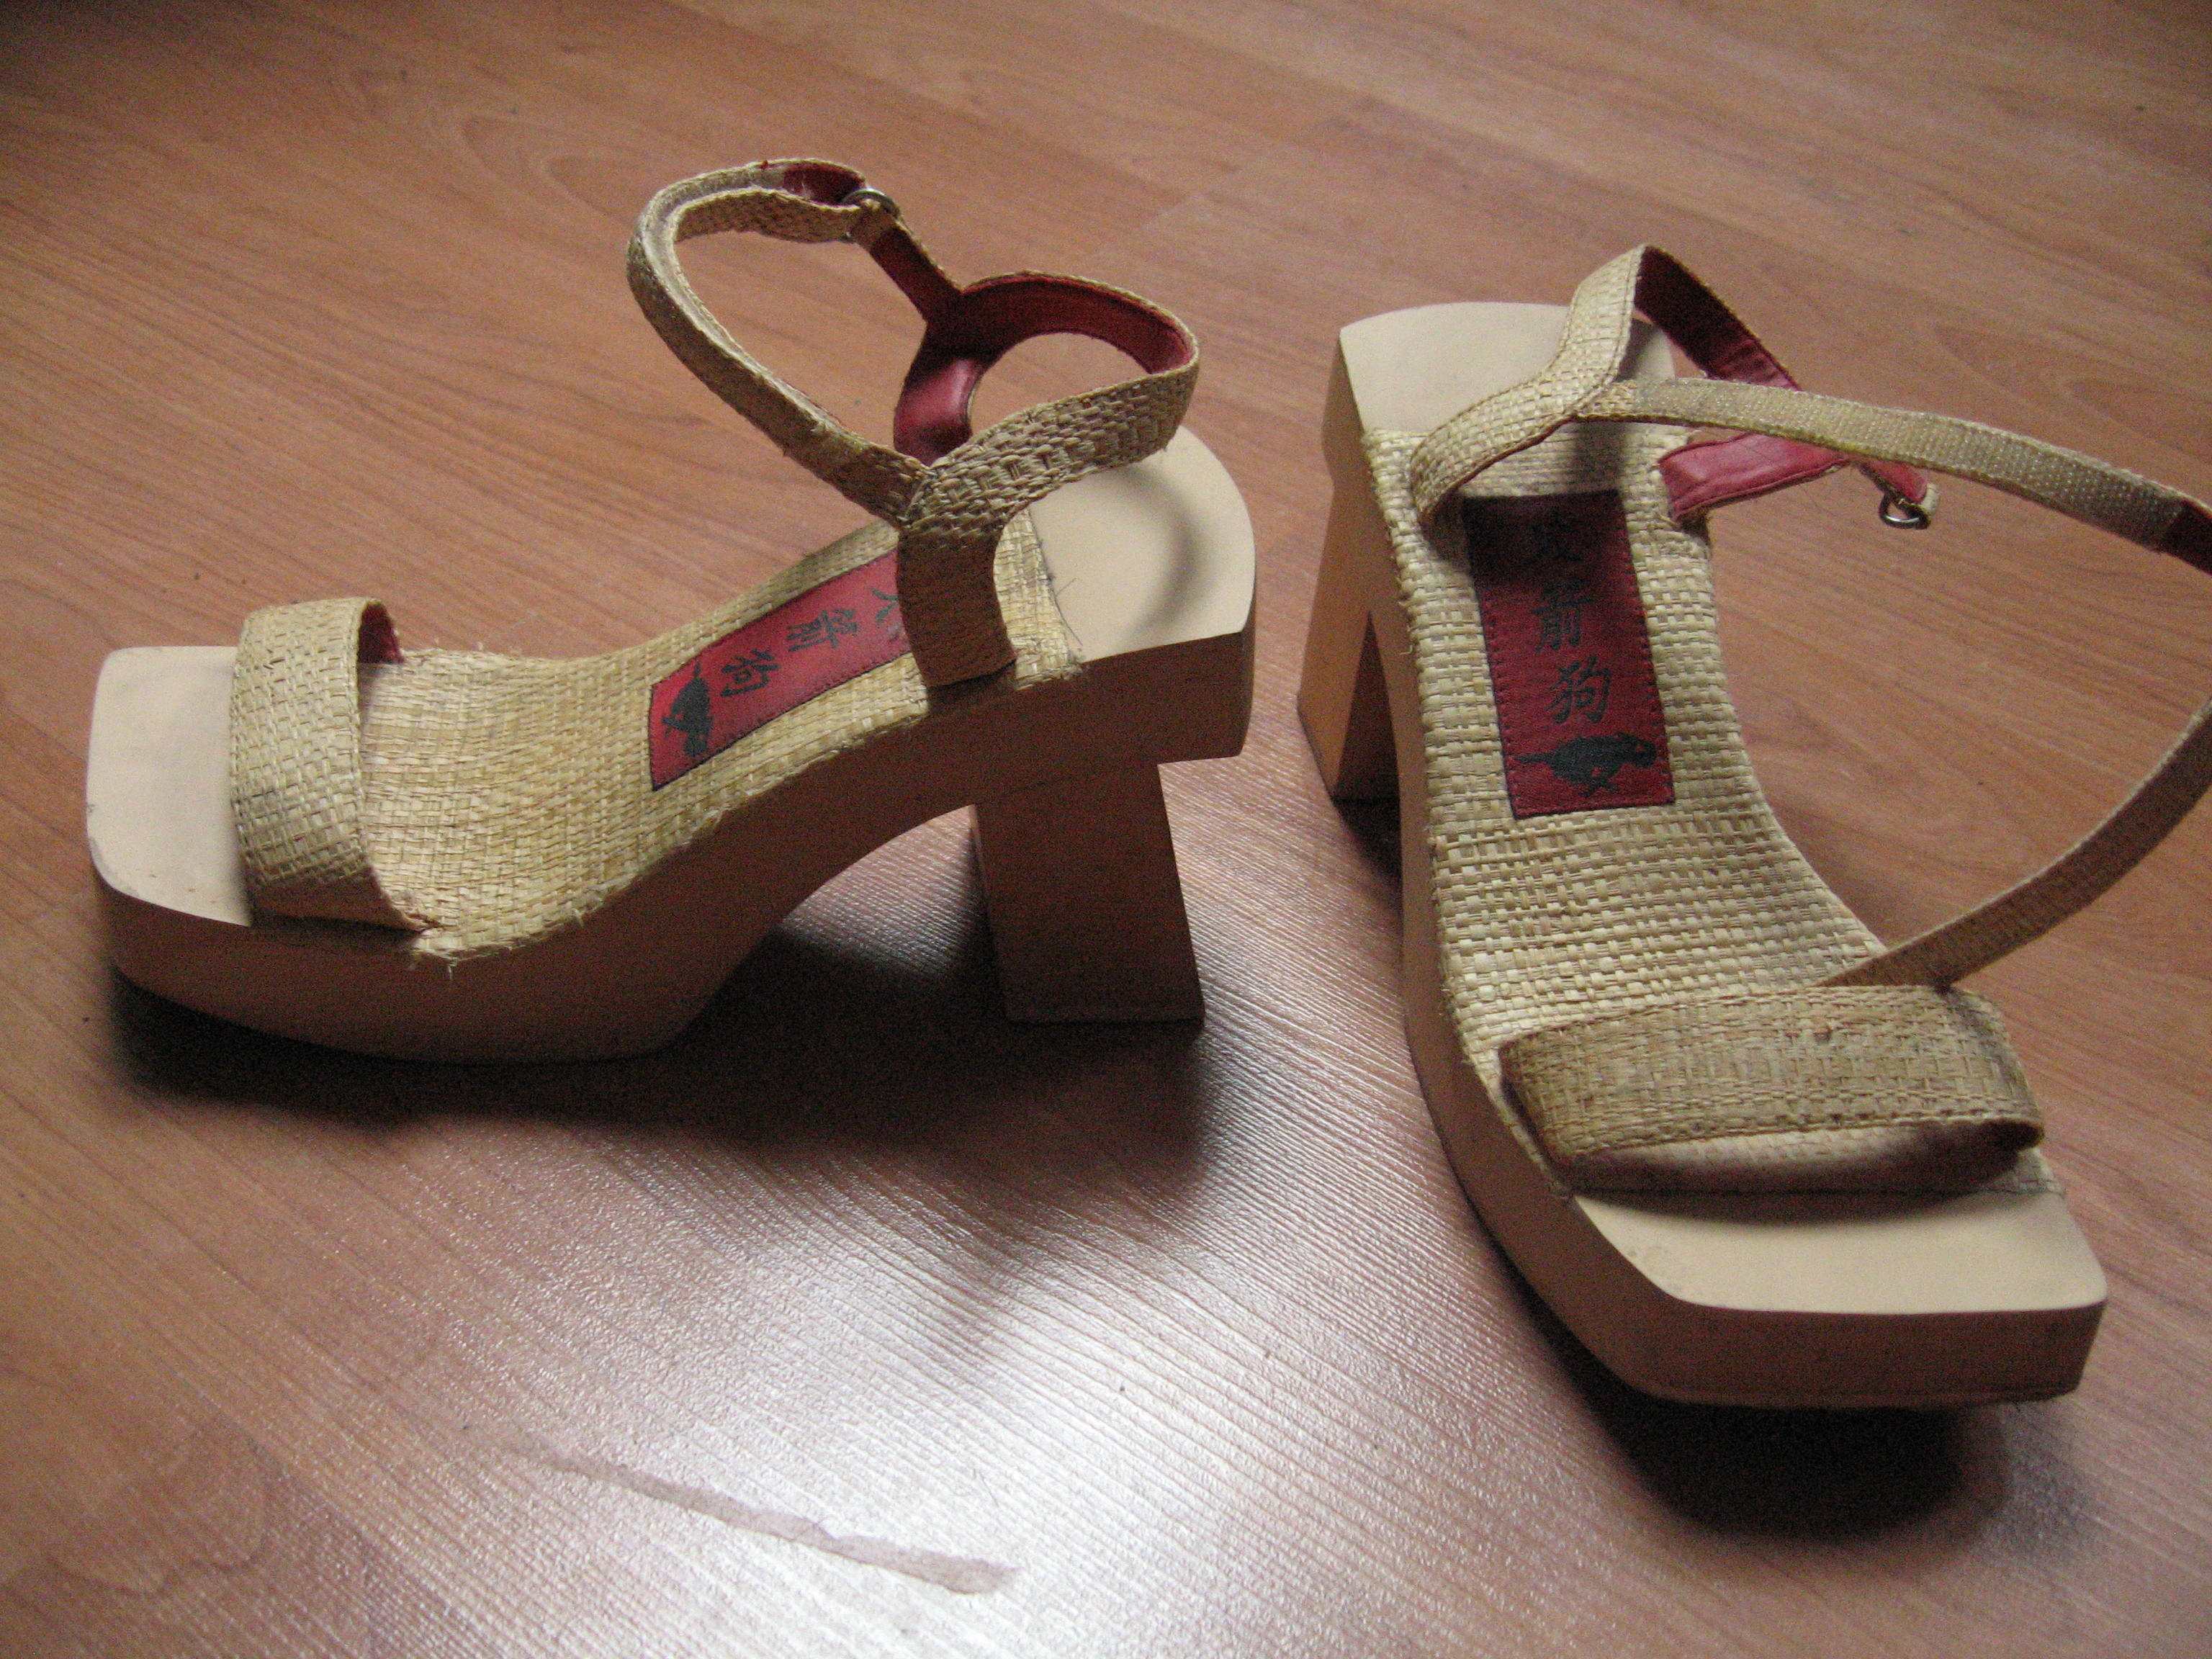 My shoes for sale #1: Rocket dog kabuki wood heels